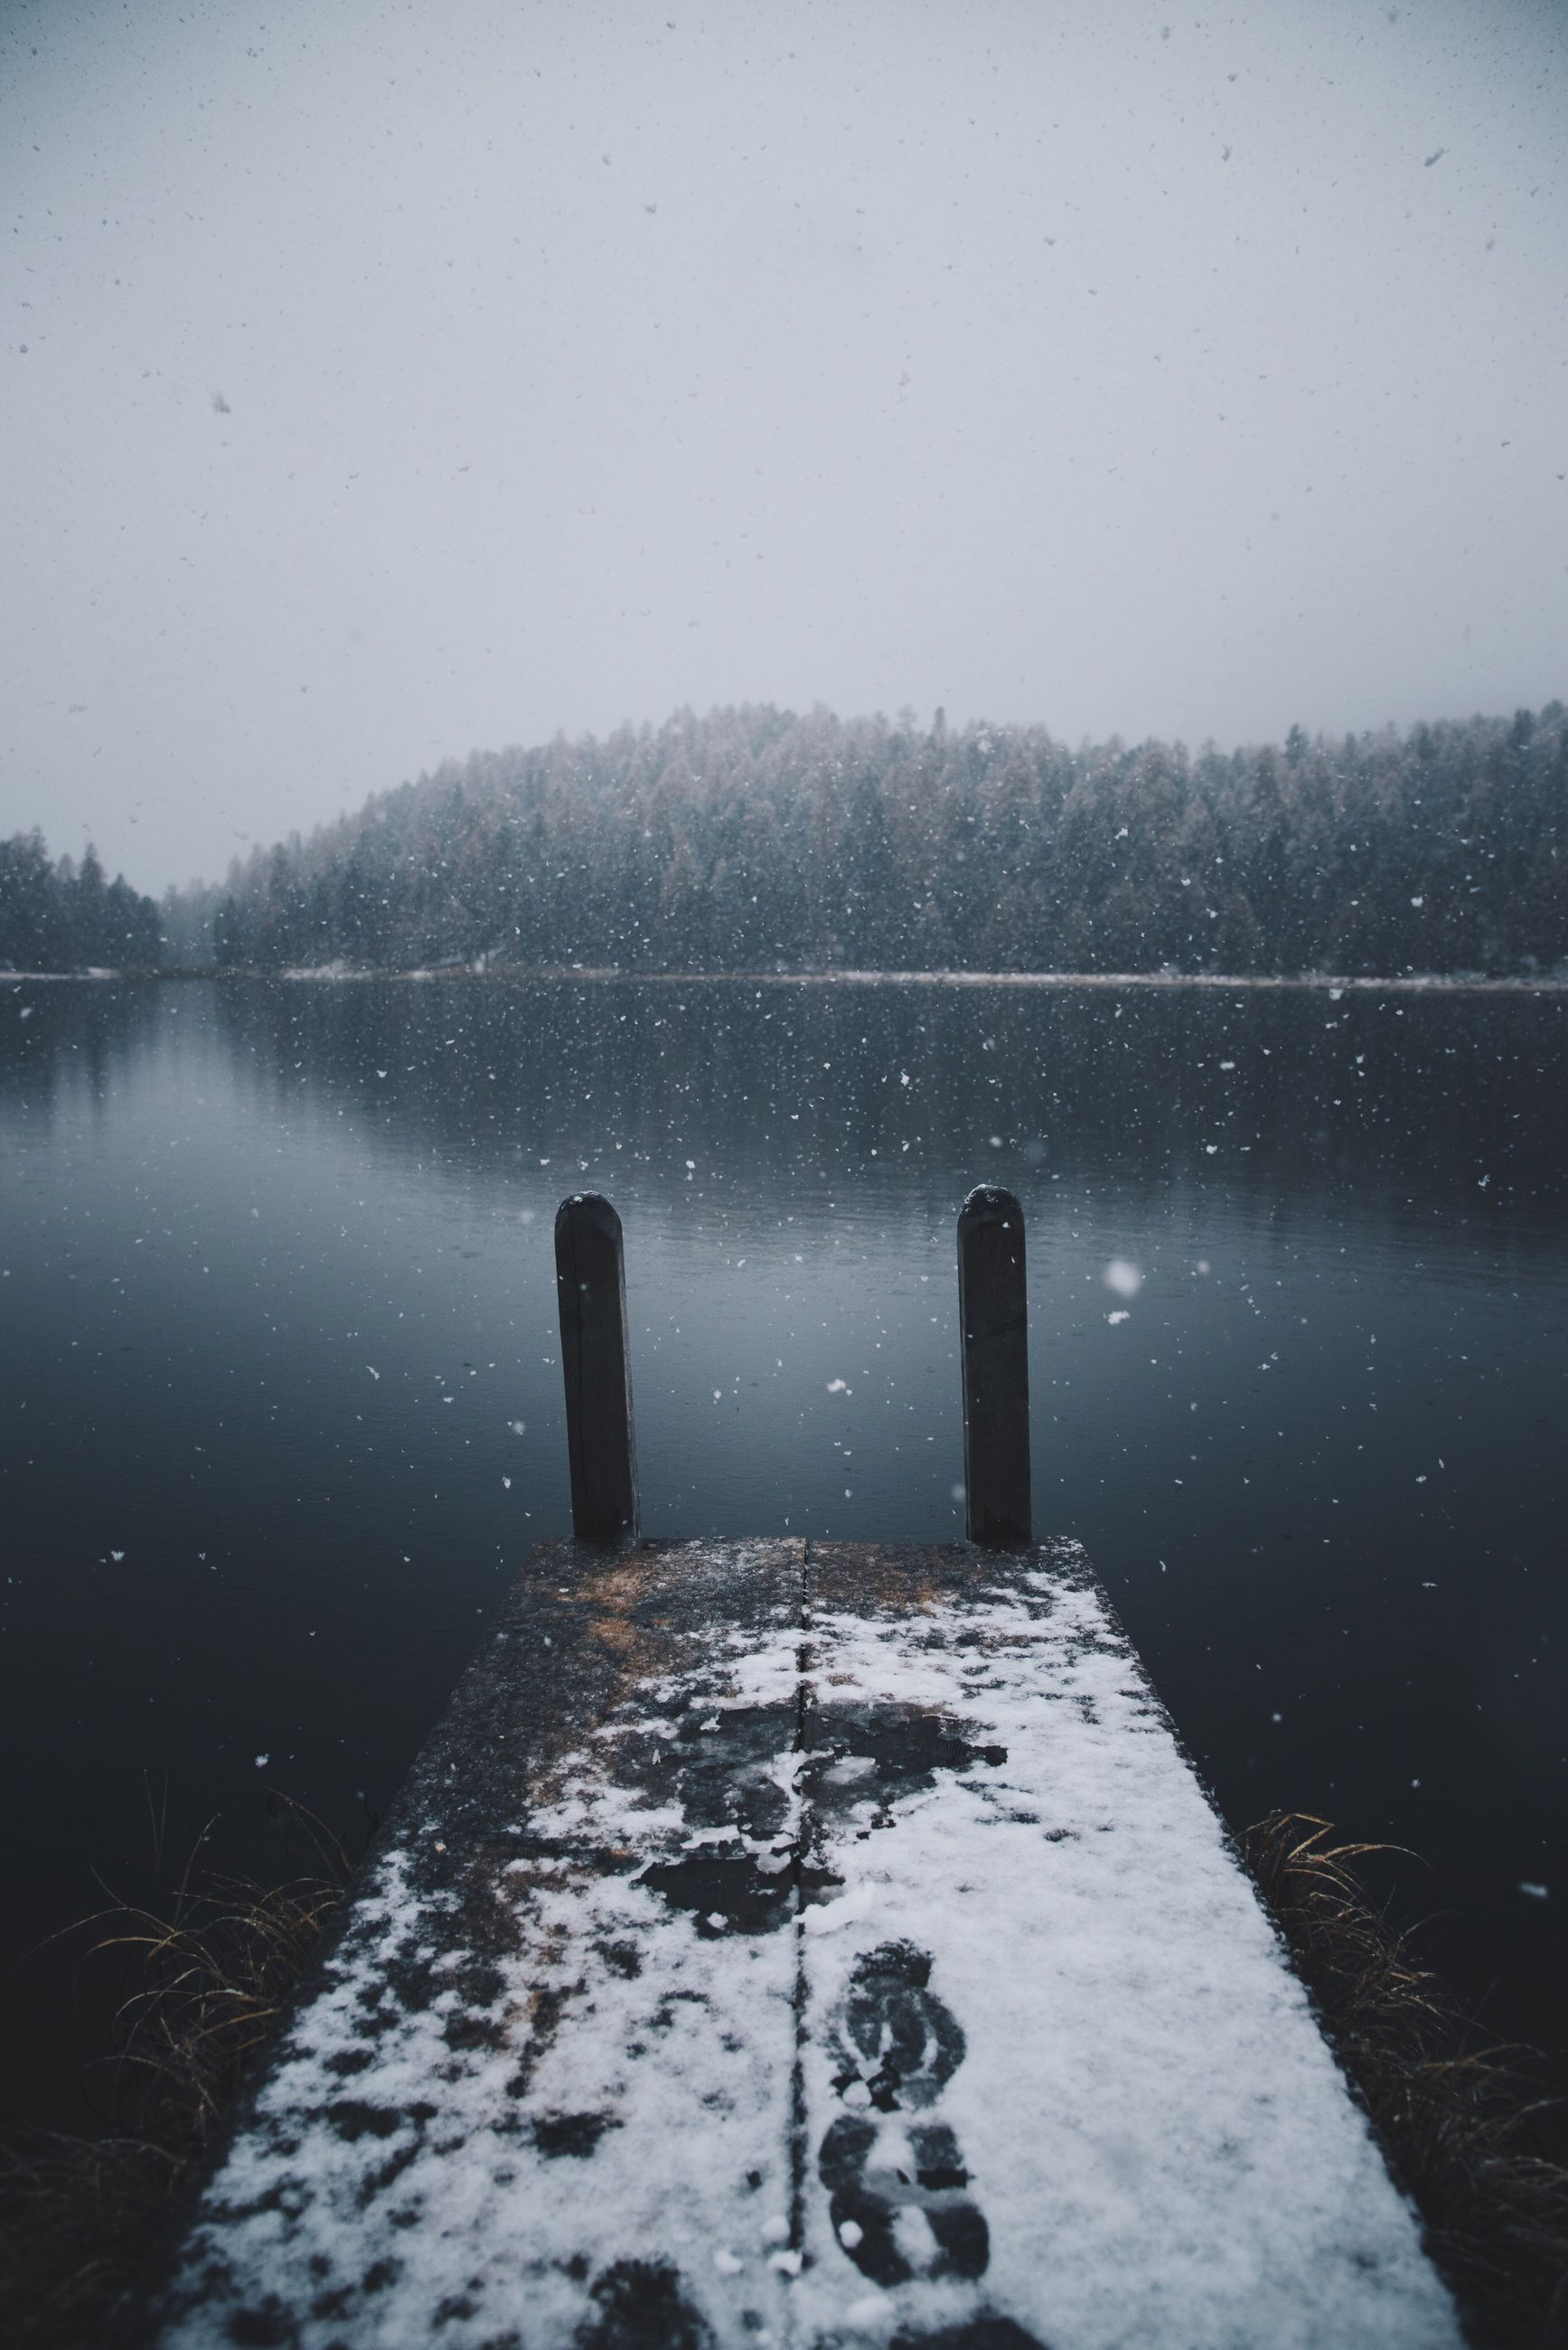 water, weather, nature, lake, outdoors, no people, cold temperature, day, wet, sky, winter, snow, architecture